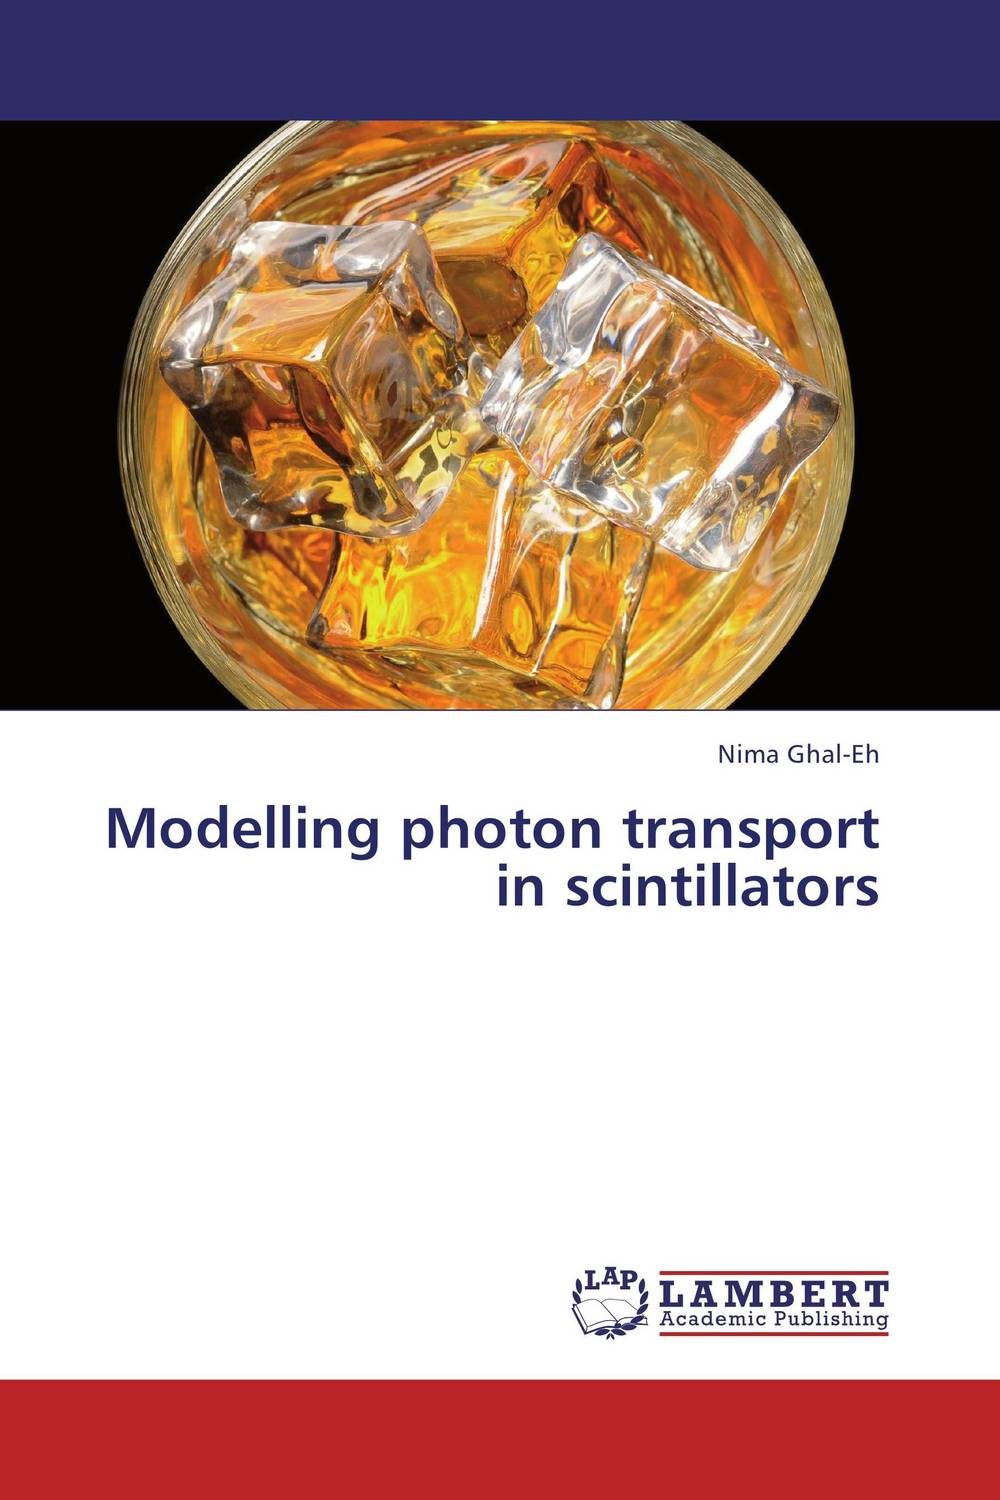 Modelling photon transport in scintillators monte carlo techniques for electron radiotherapy